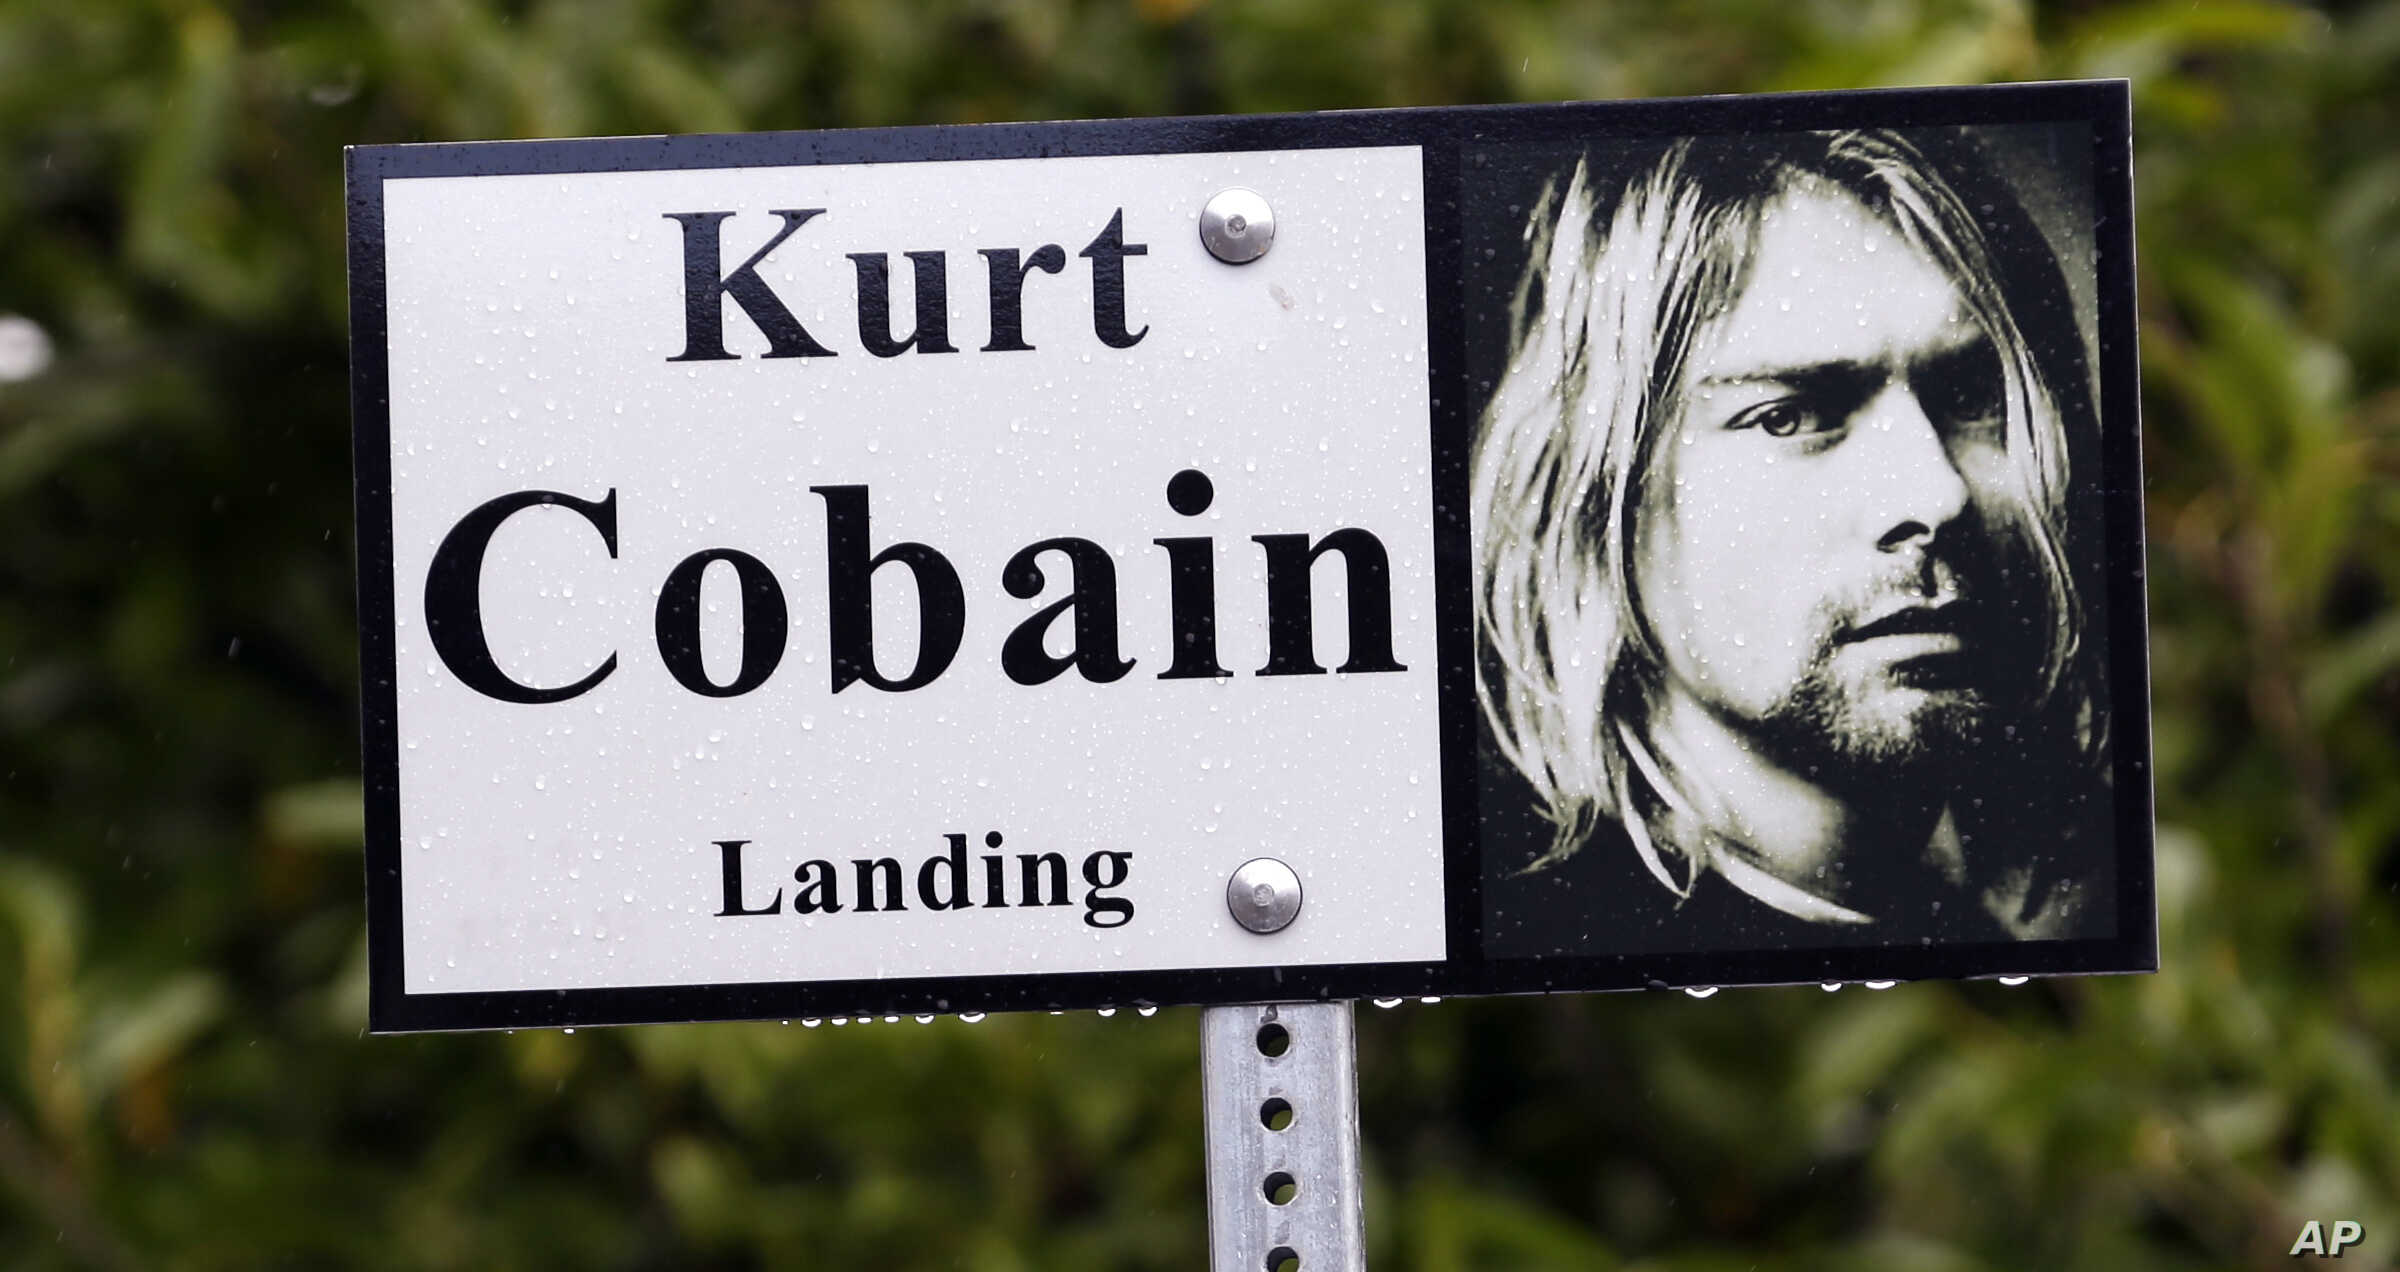 """In this photo taken Monday, Sept. 23, 2013, a sign marks the location of """"Kurt Cobain Landing,"""" a tiny park blocks from the childhood home of Kurt Cobain, the late frontman of Nirvana, in Aberdeen, Wash."""